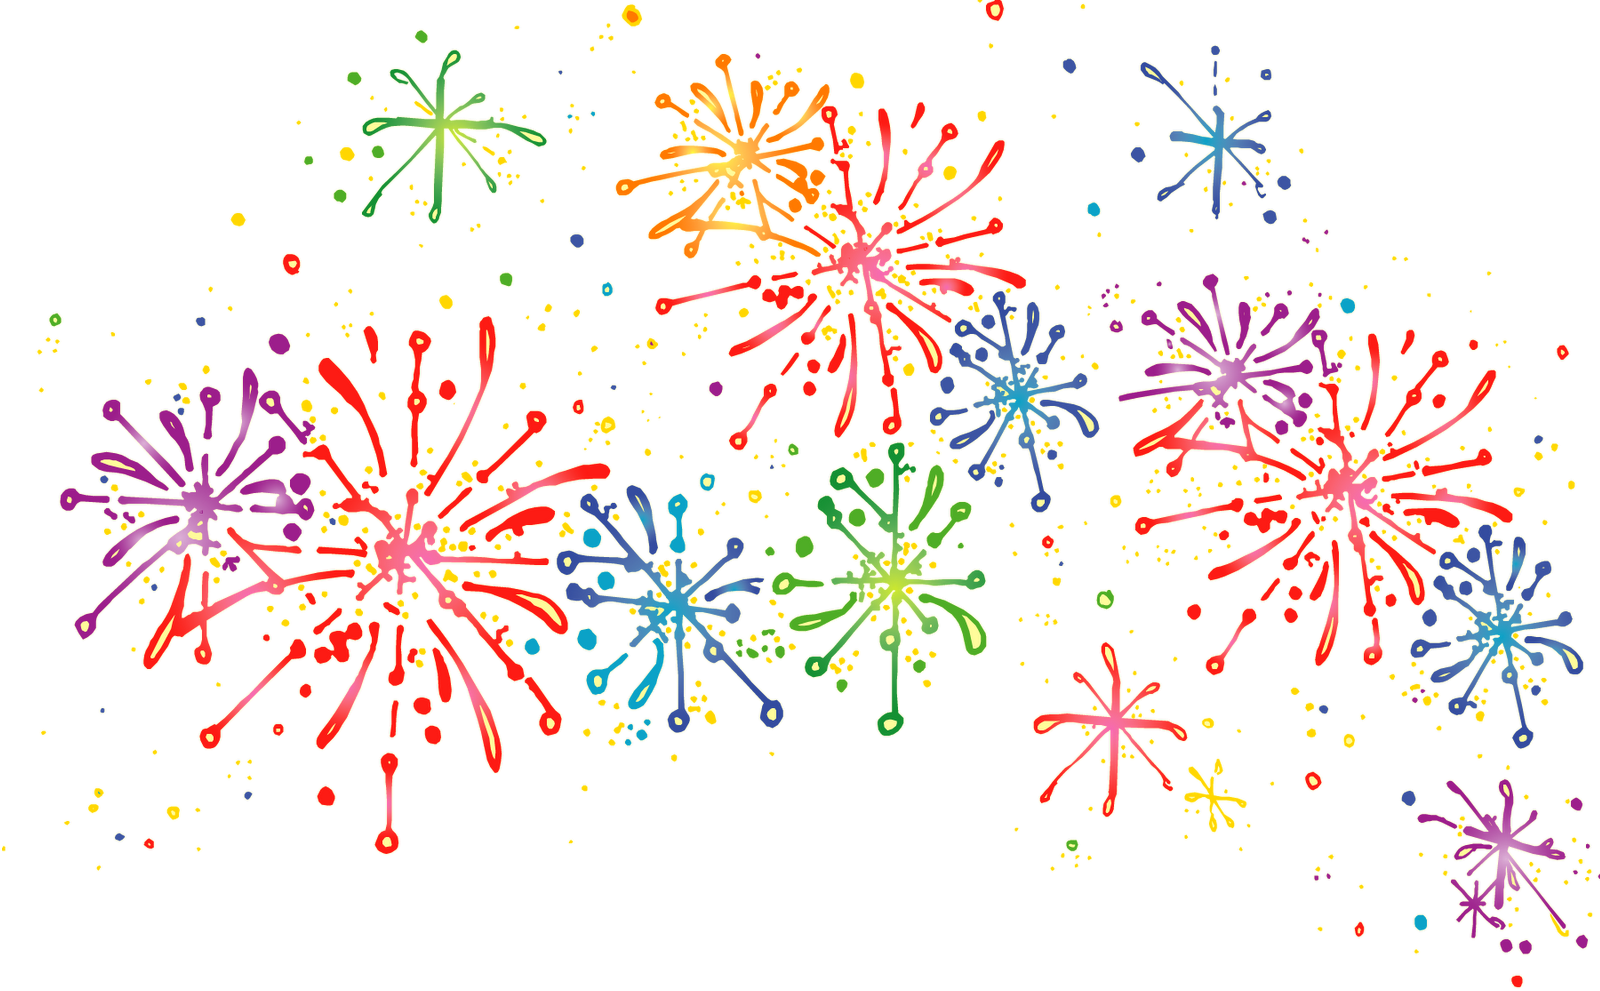 Fireworks png image. Without background web icons